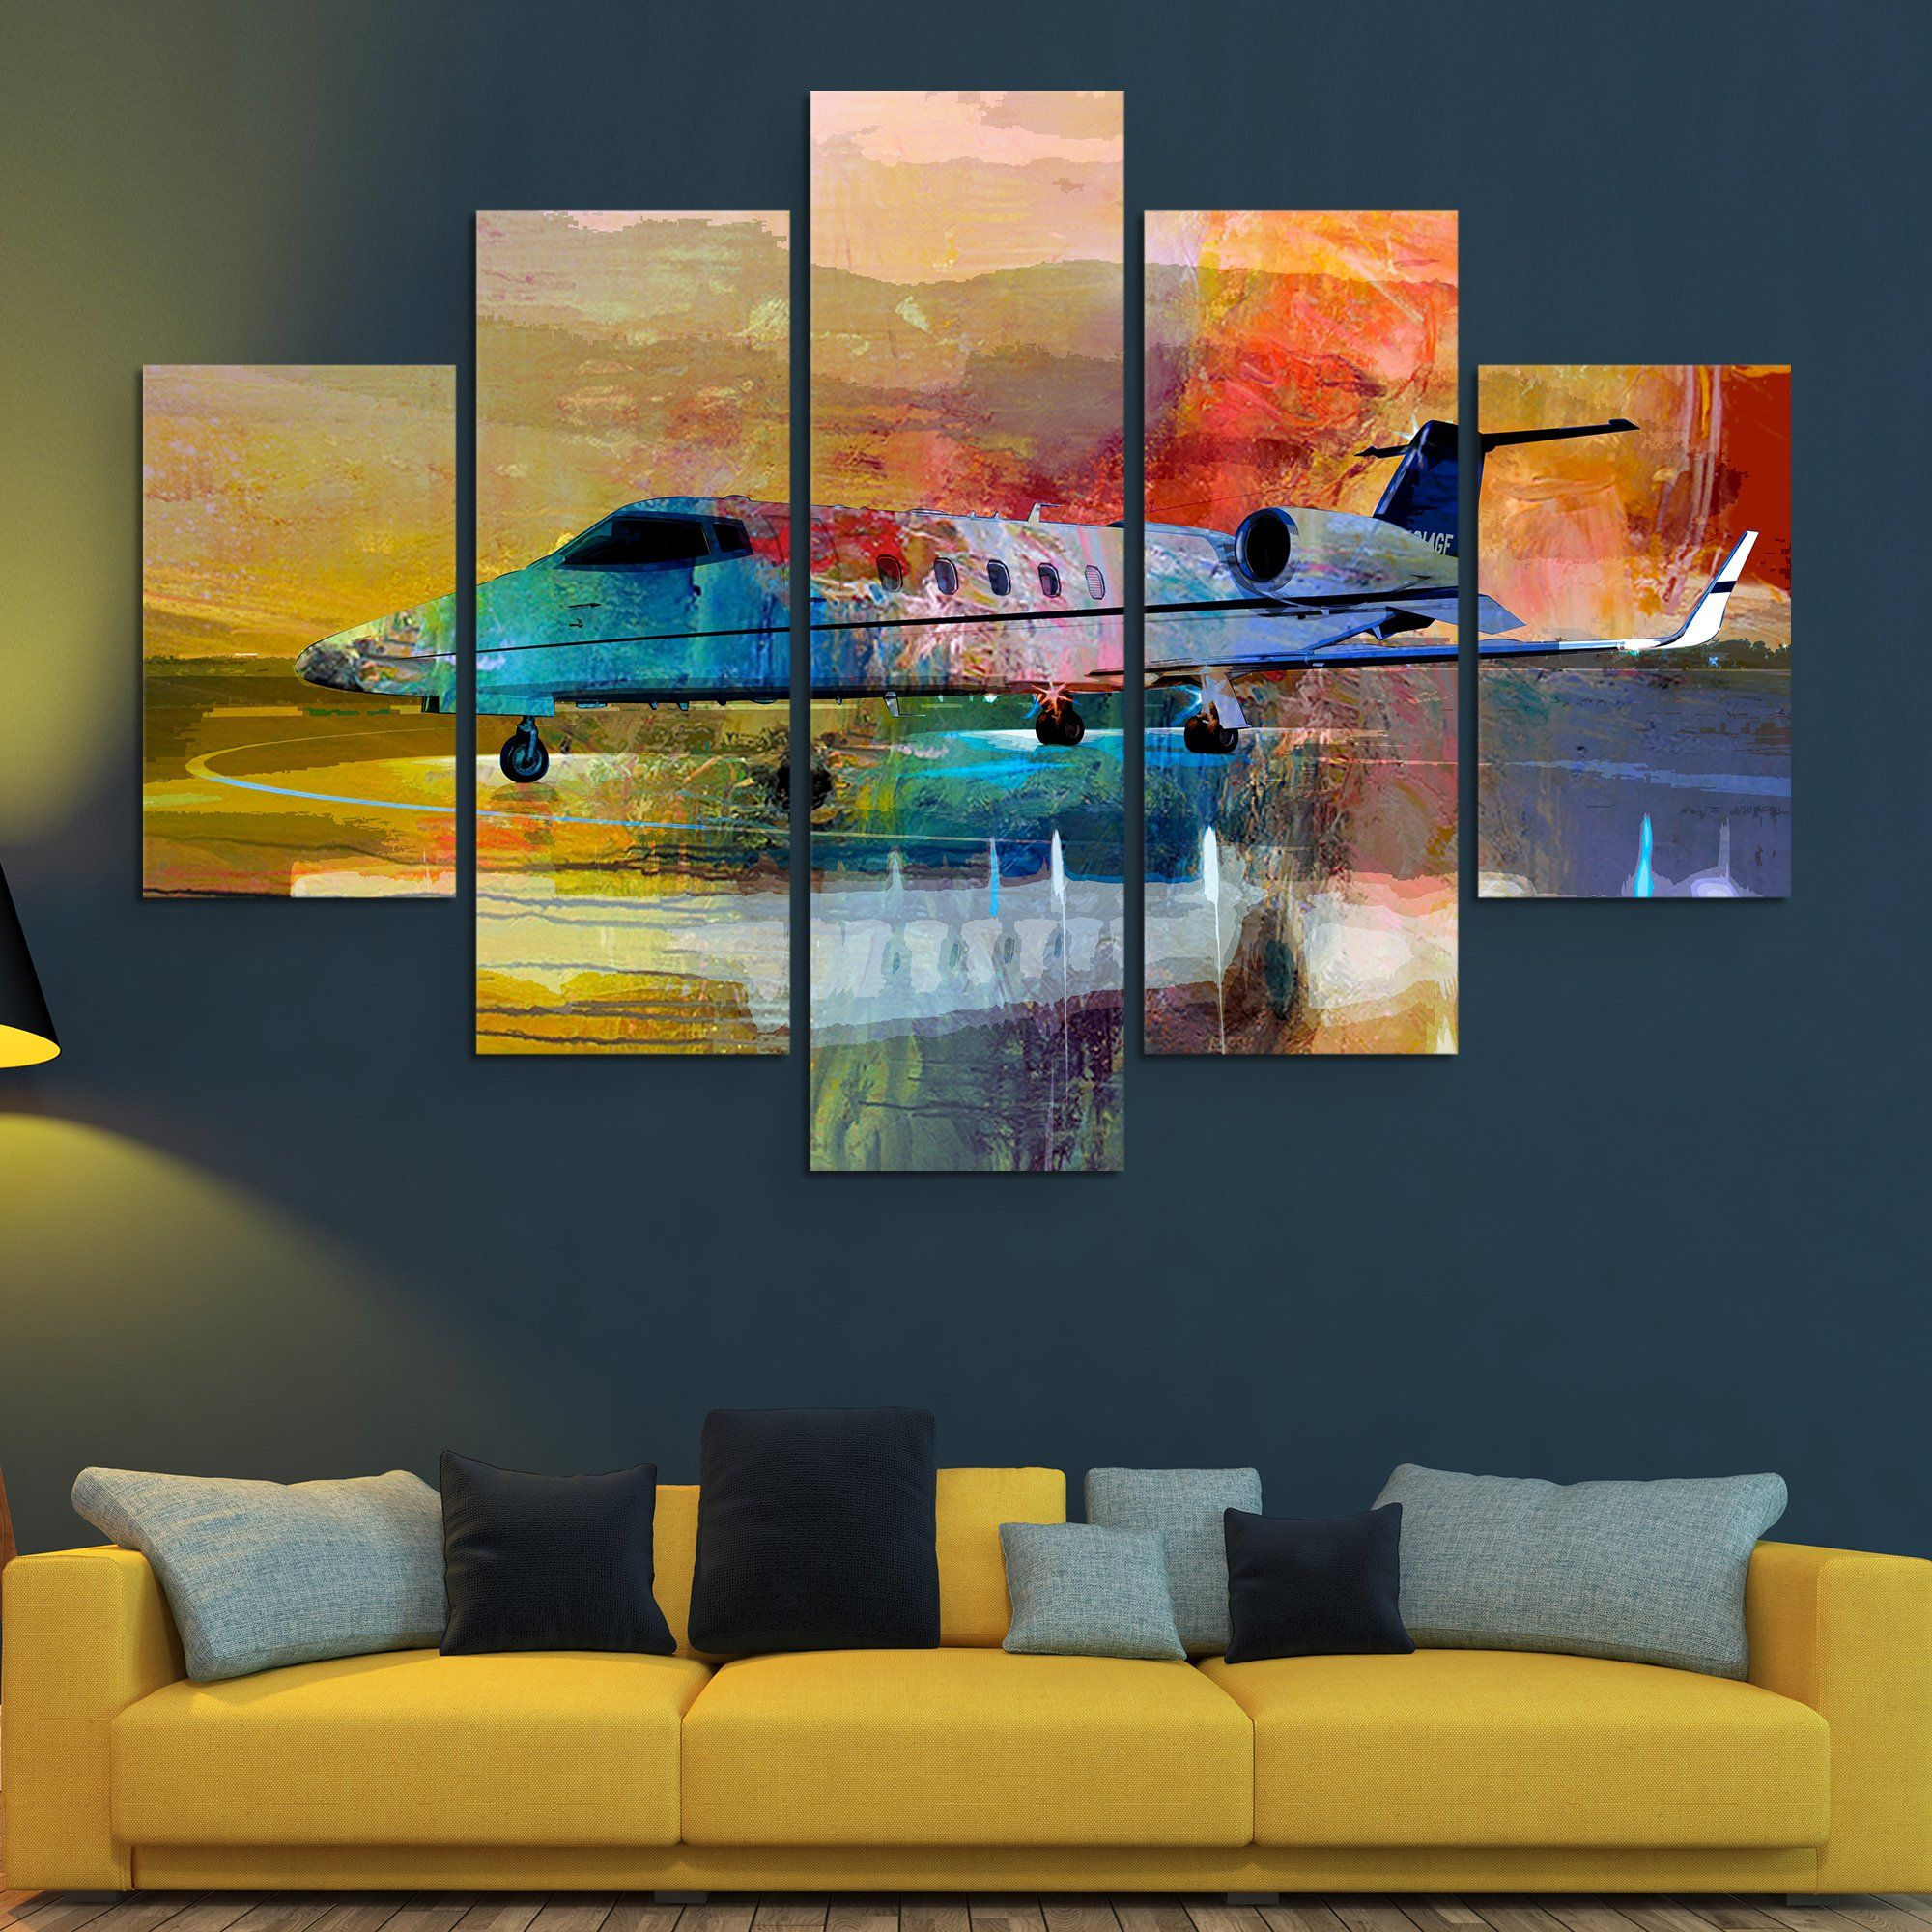 5 piece Jet Dreams wall art